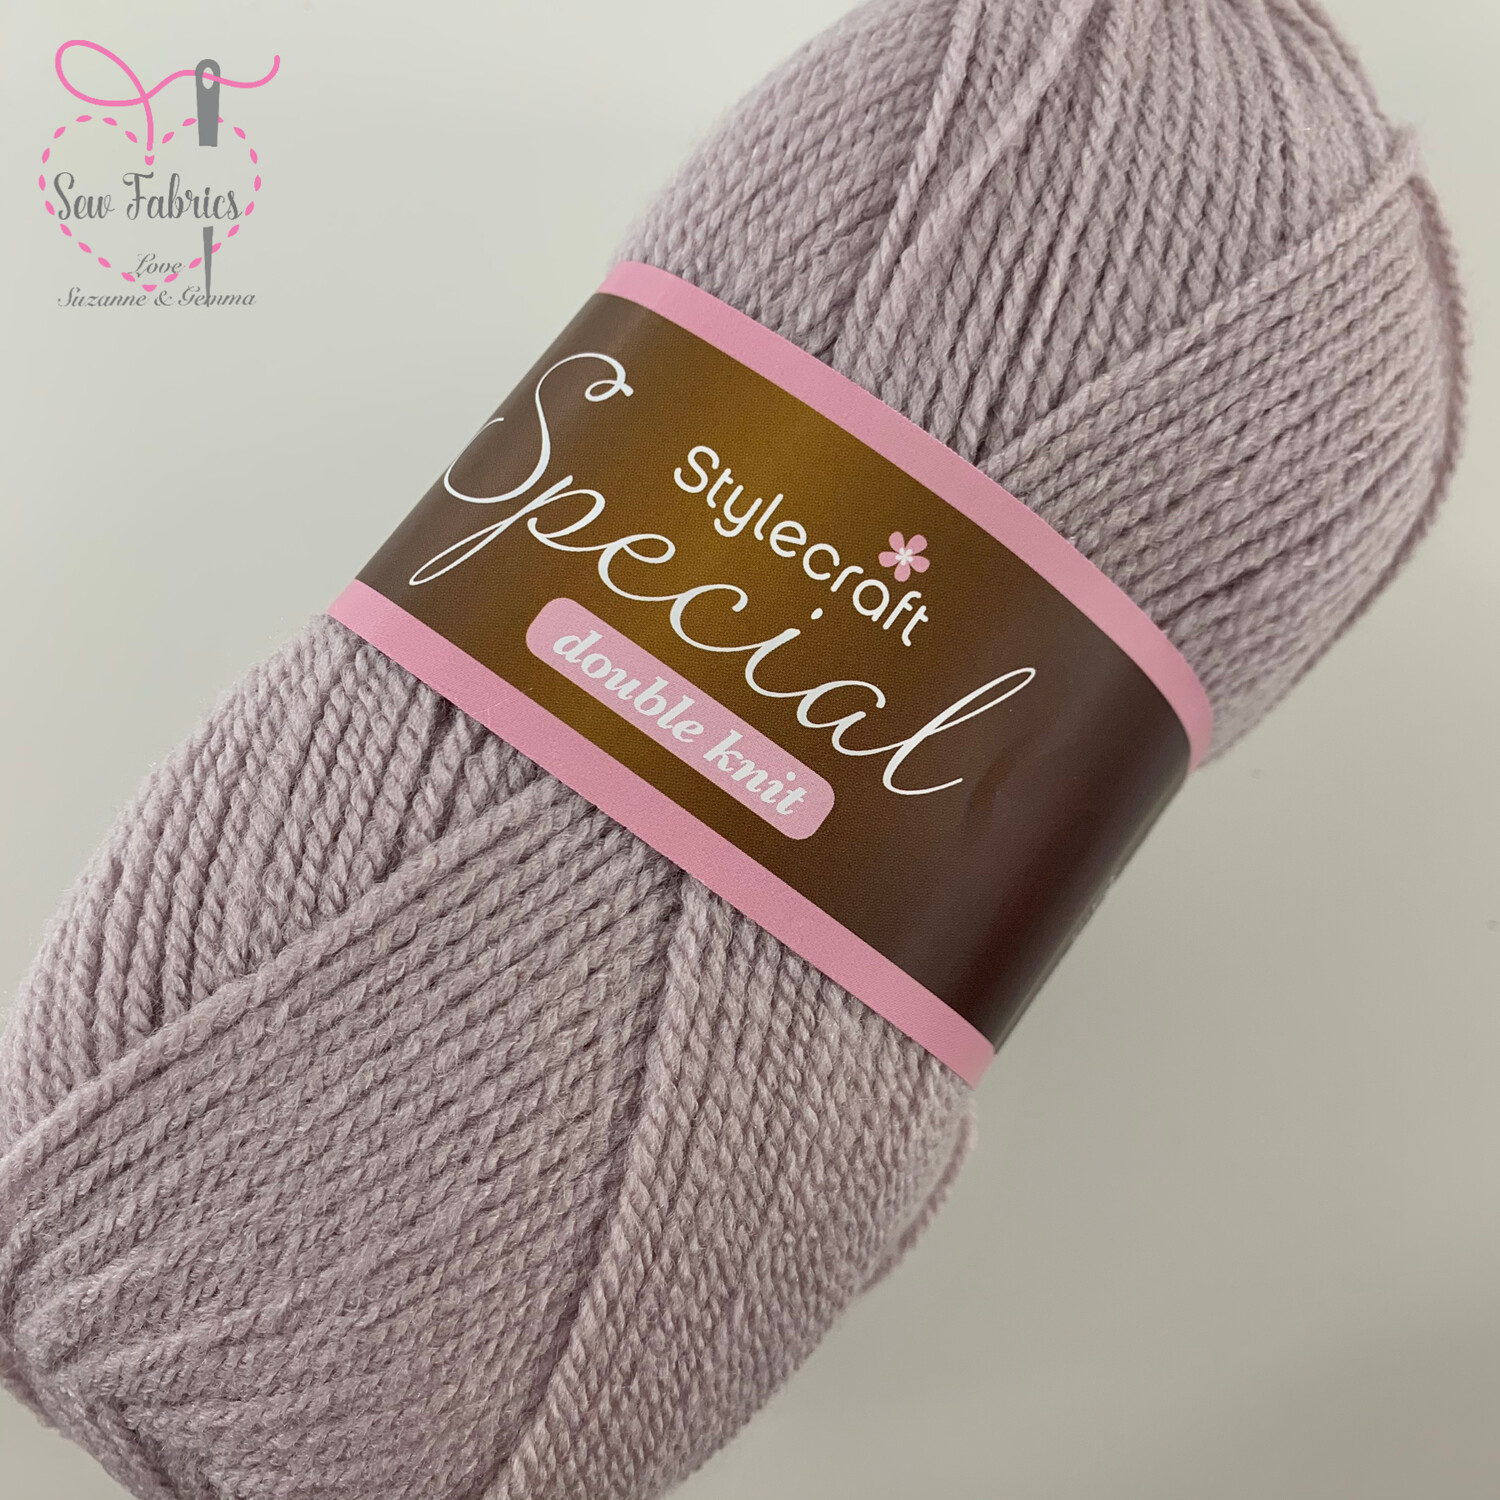 Stylecraft Special DK 100% Premium Acrylic Wool - Mushroom  Buy More Than 1 Ball & Get 30% Off With Code STYLE30